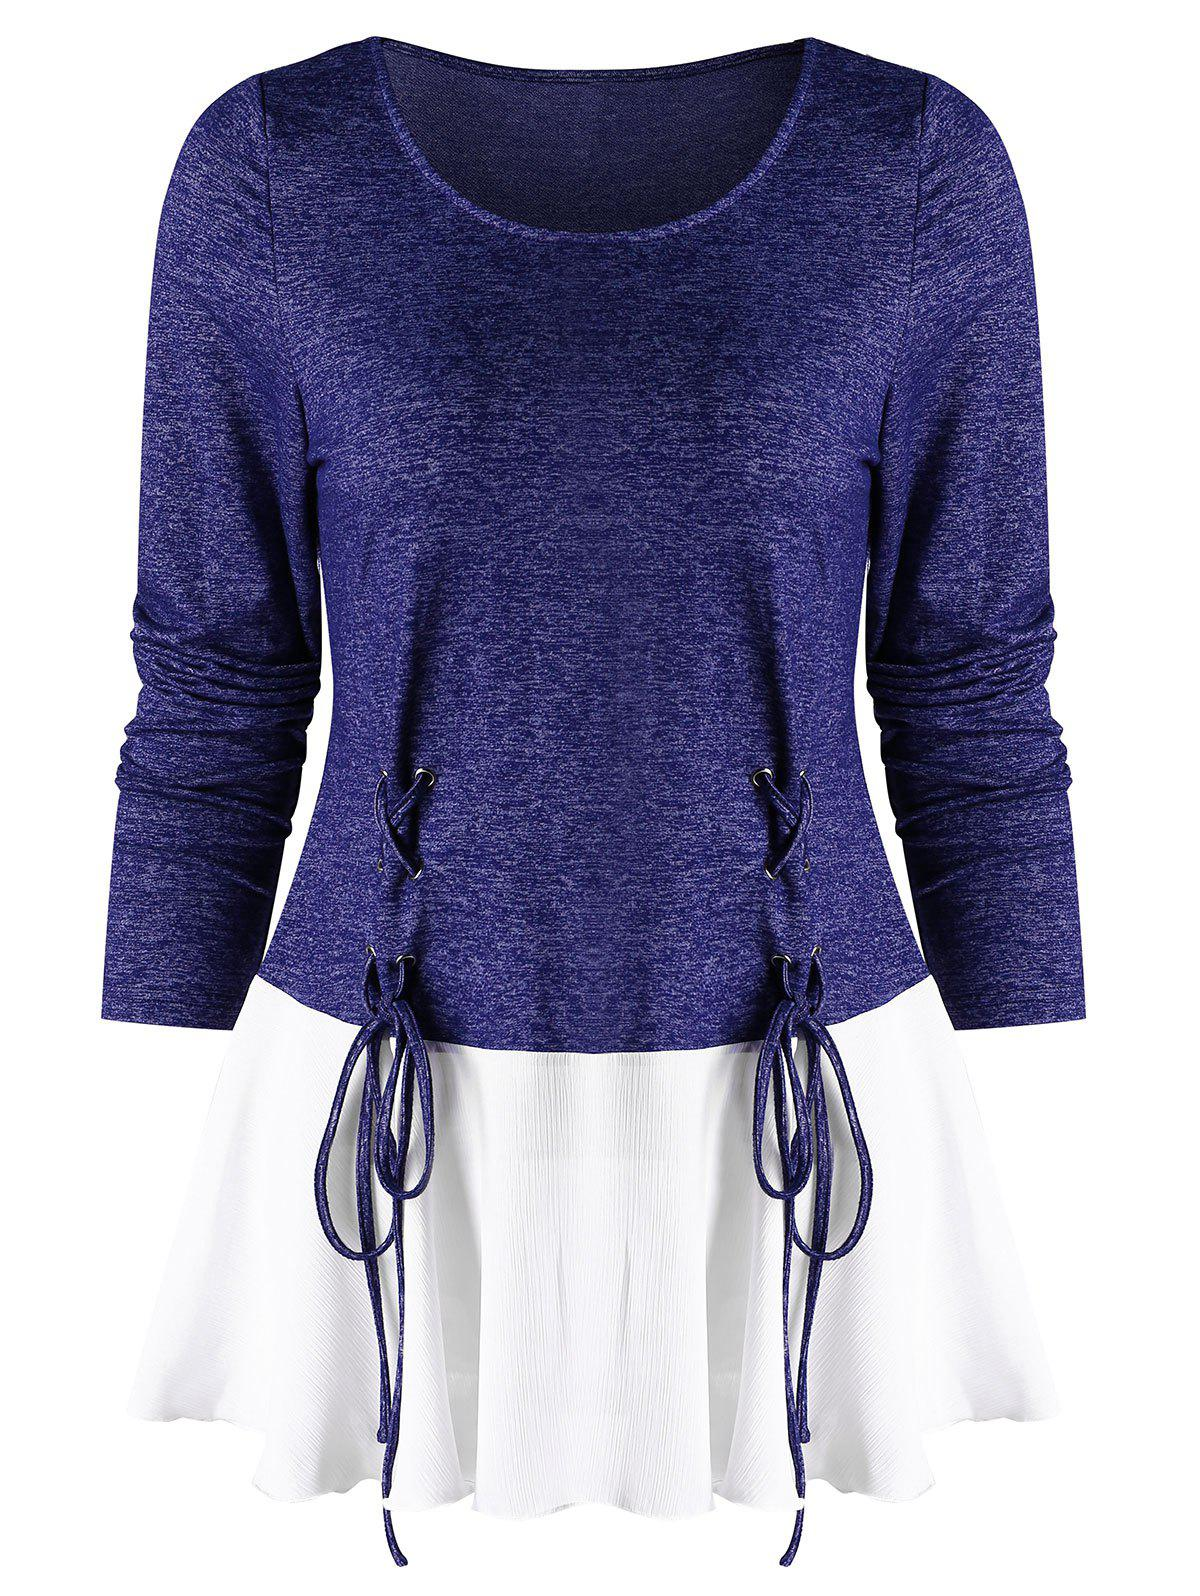 Best Lace Up Spliced Long Sleeves Top